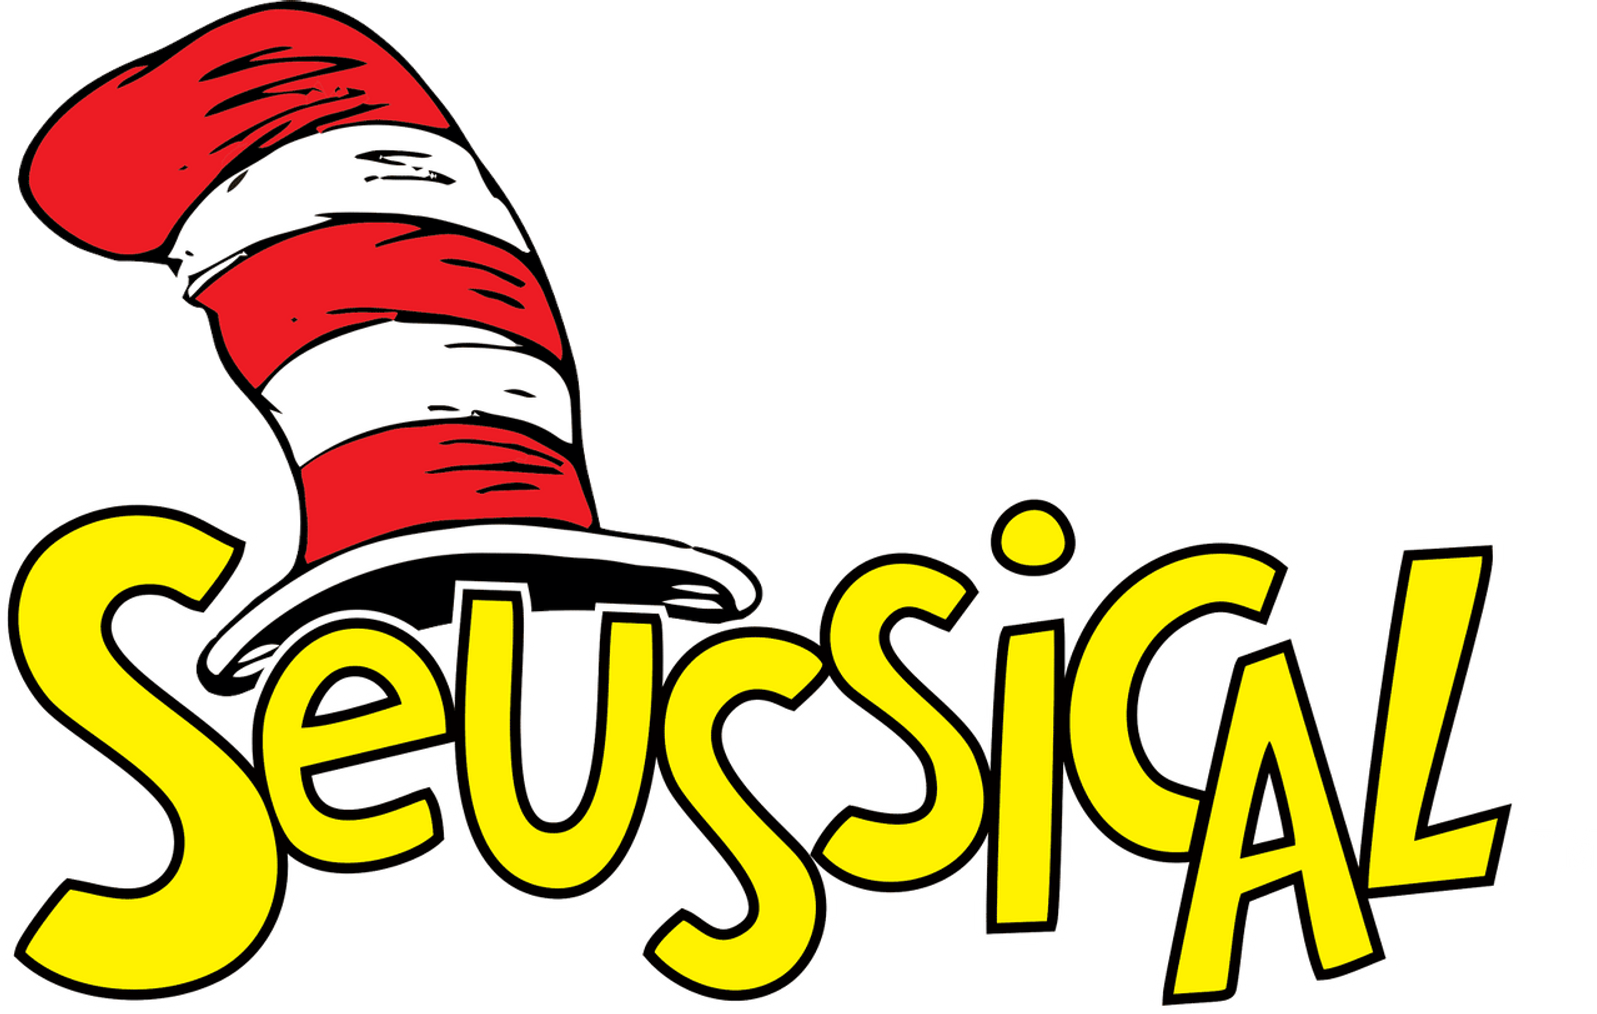 front-seussical-for-website.png